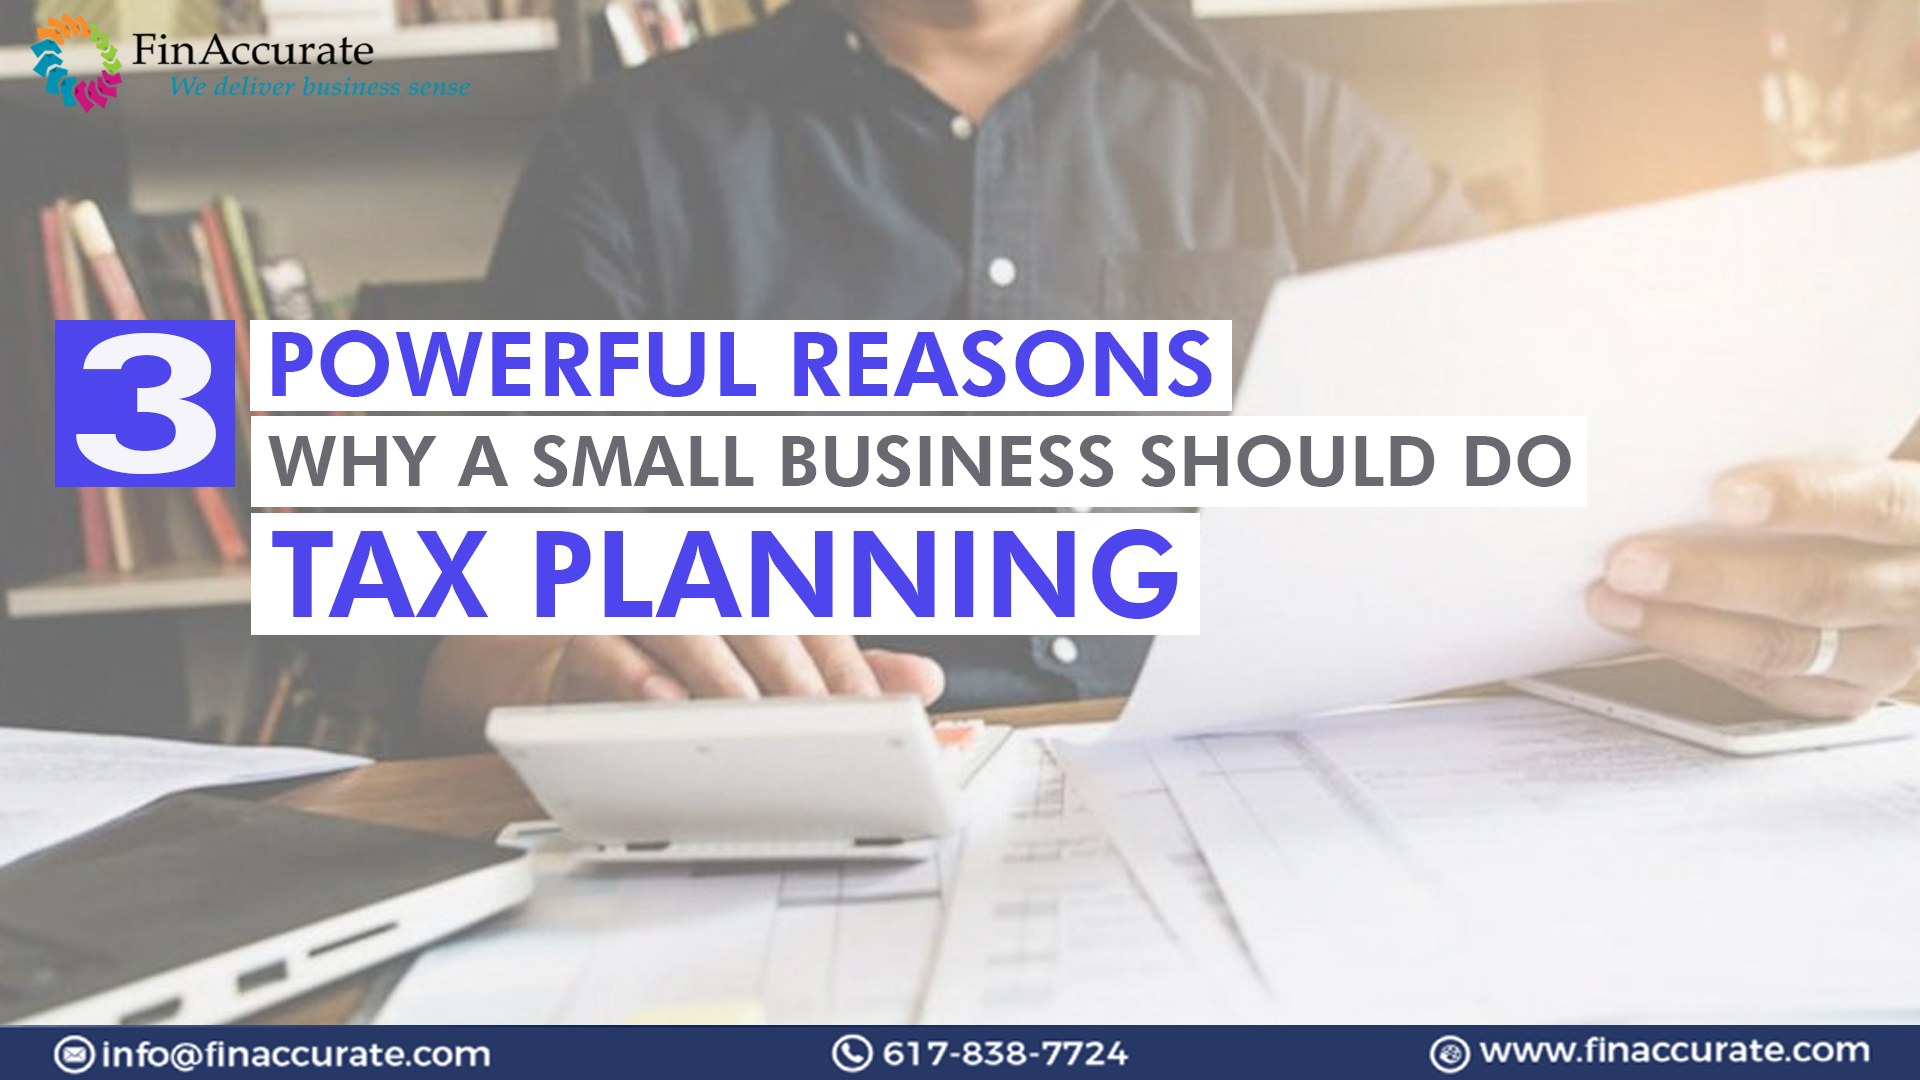 3 Powerful Reasons Why A Small Business Should Do Tax Planning